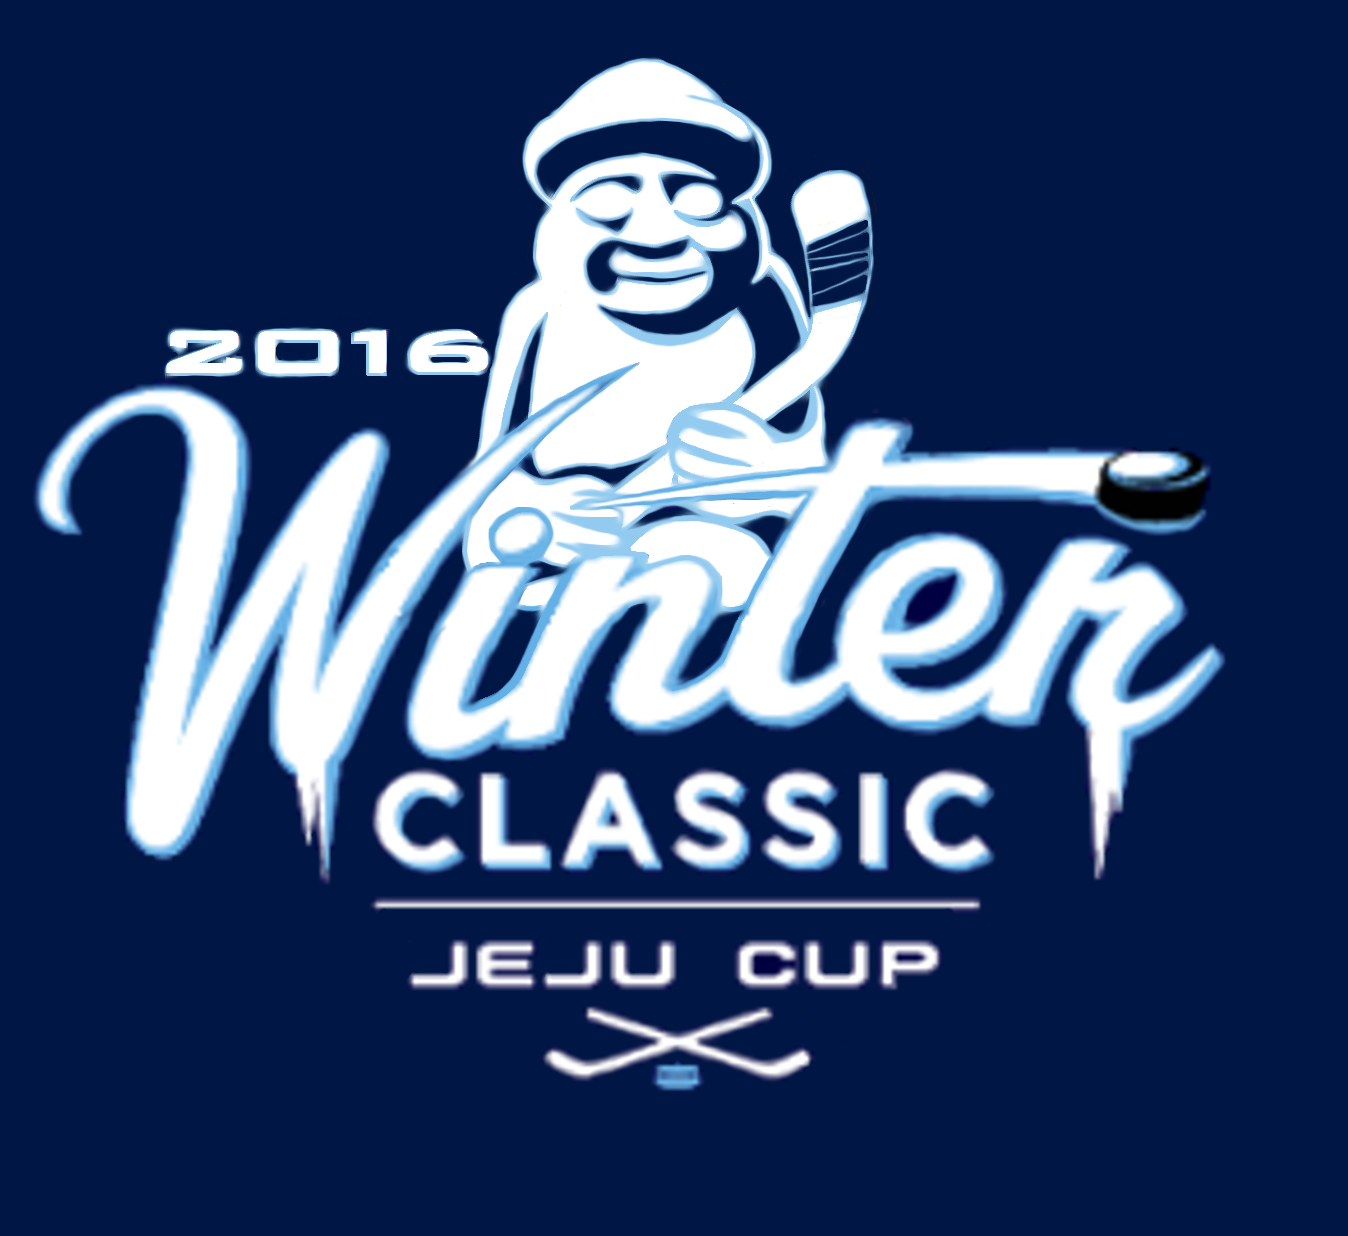 3rd Annual Jeju Cup Winter Classic ball hockey tournament registration form